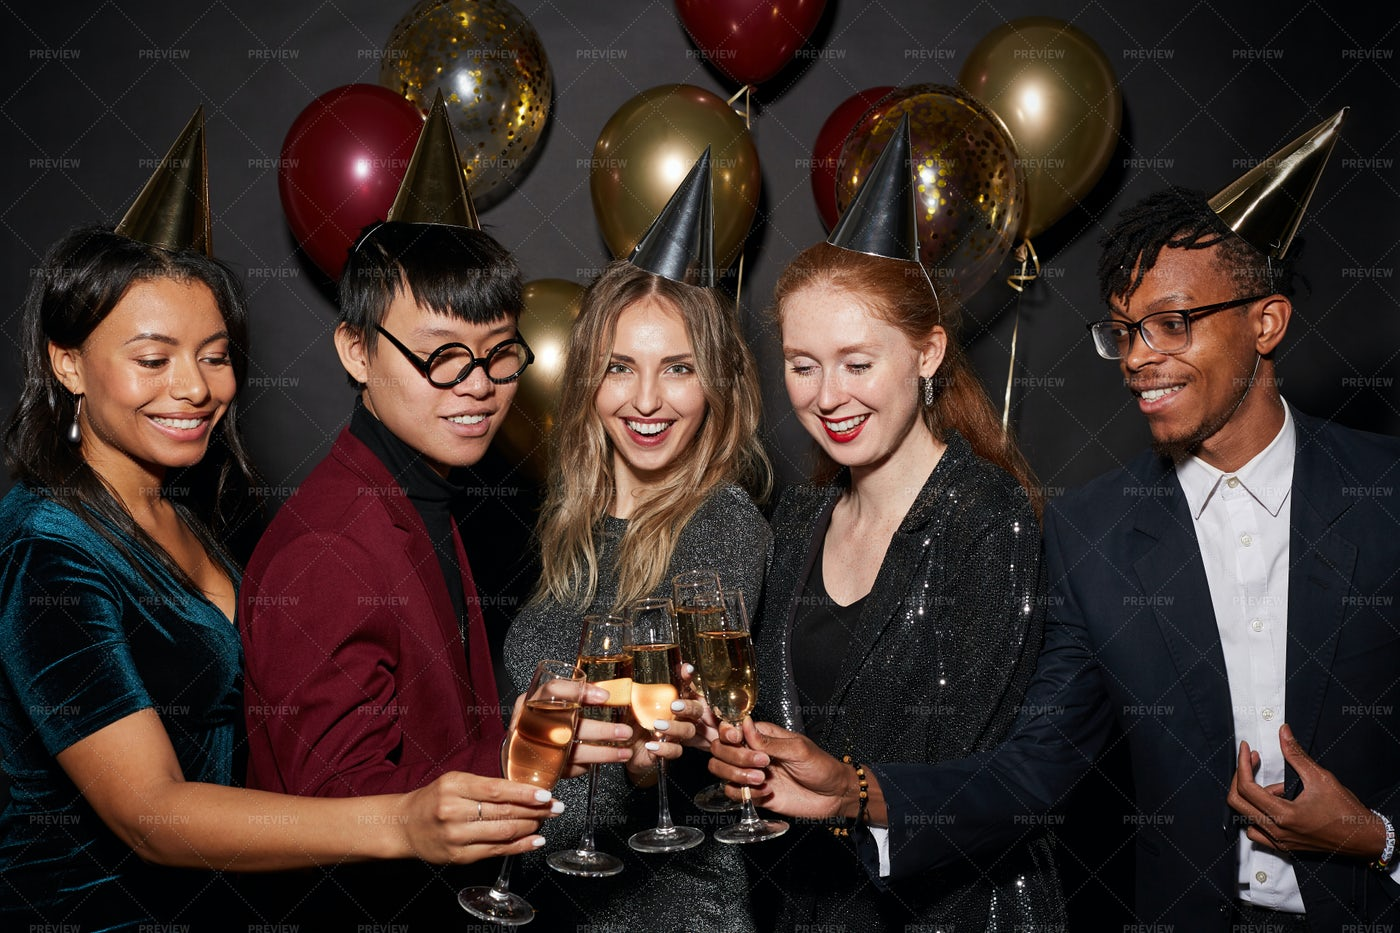 Group Of Beautiful People At Party: Stock Photos